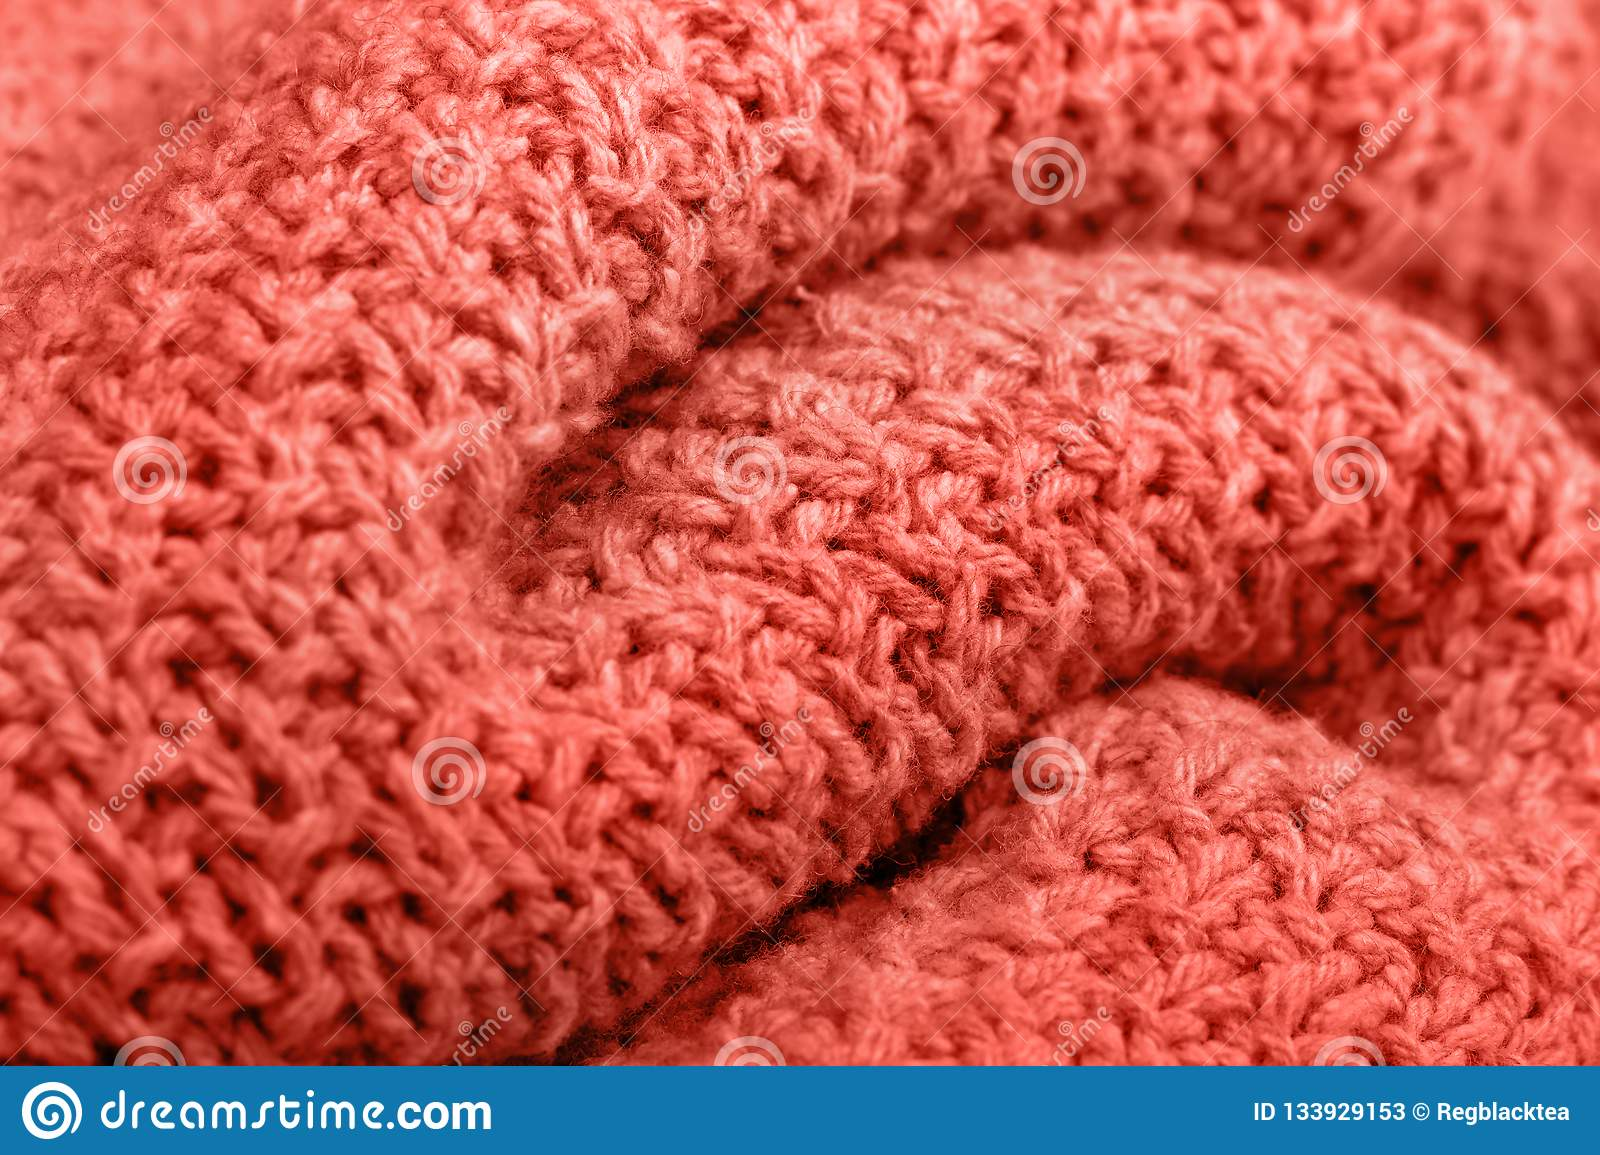 Knitted fabric texture living coral color.